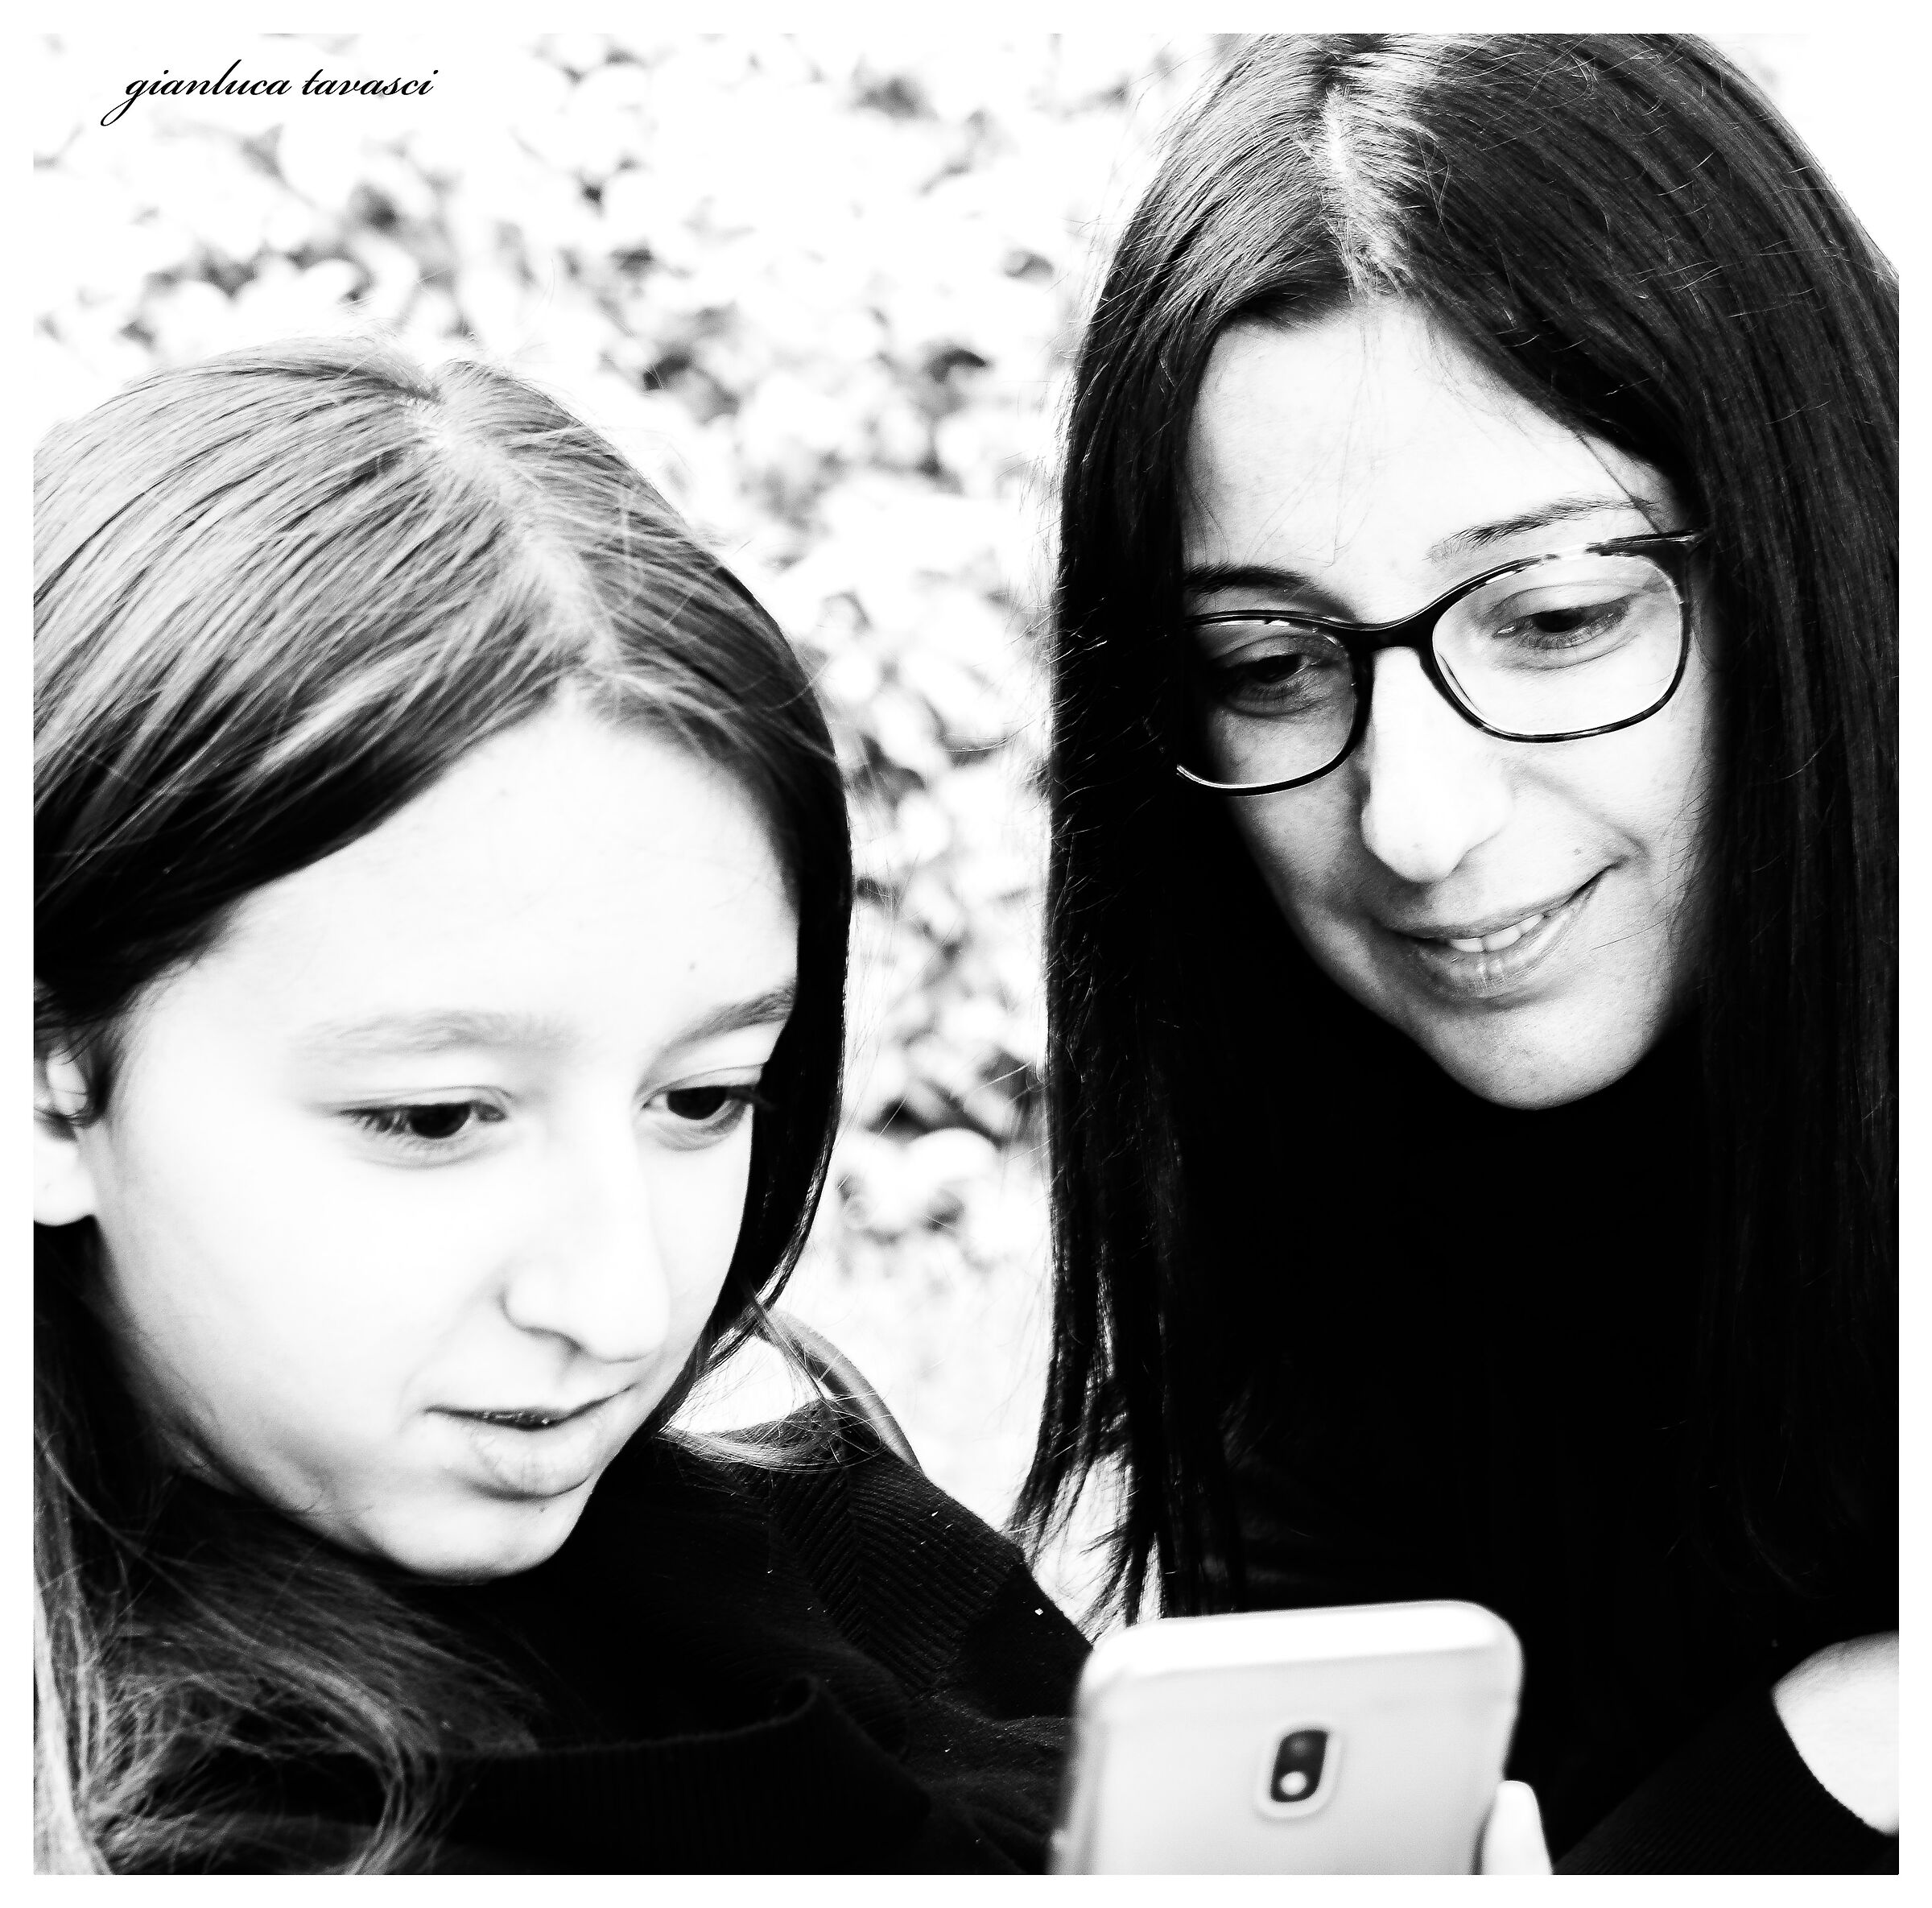 Mother & doughter #3...